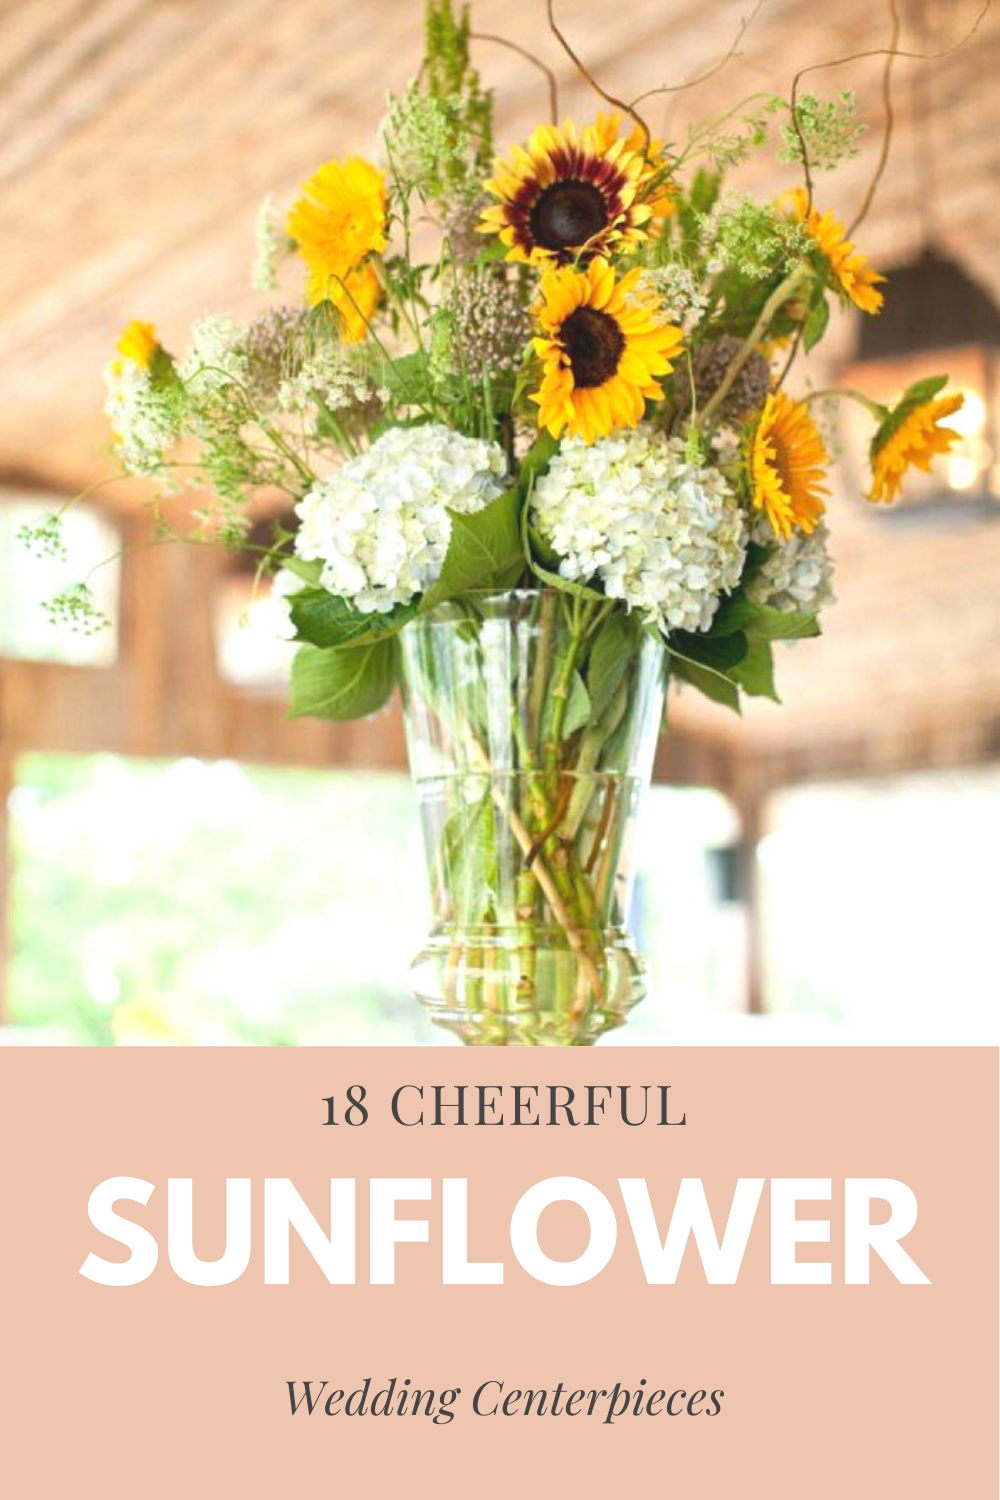 18 CHEERFUL SUNFLOWER WEDDING CENTERPIECE IDEAS